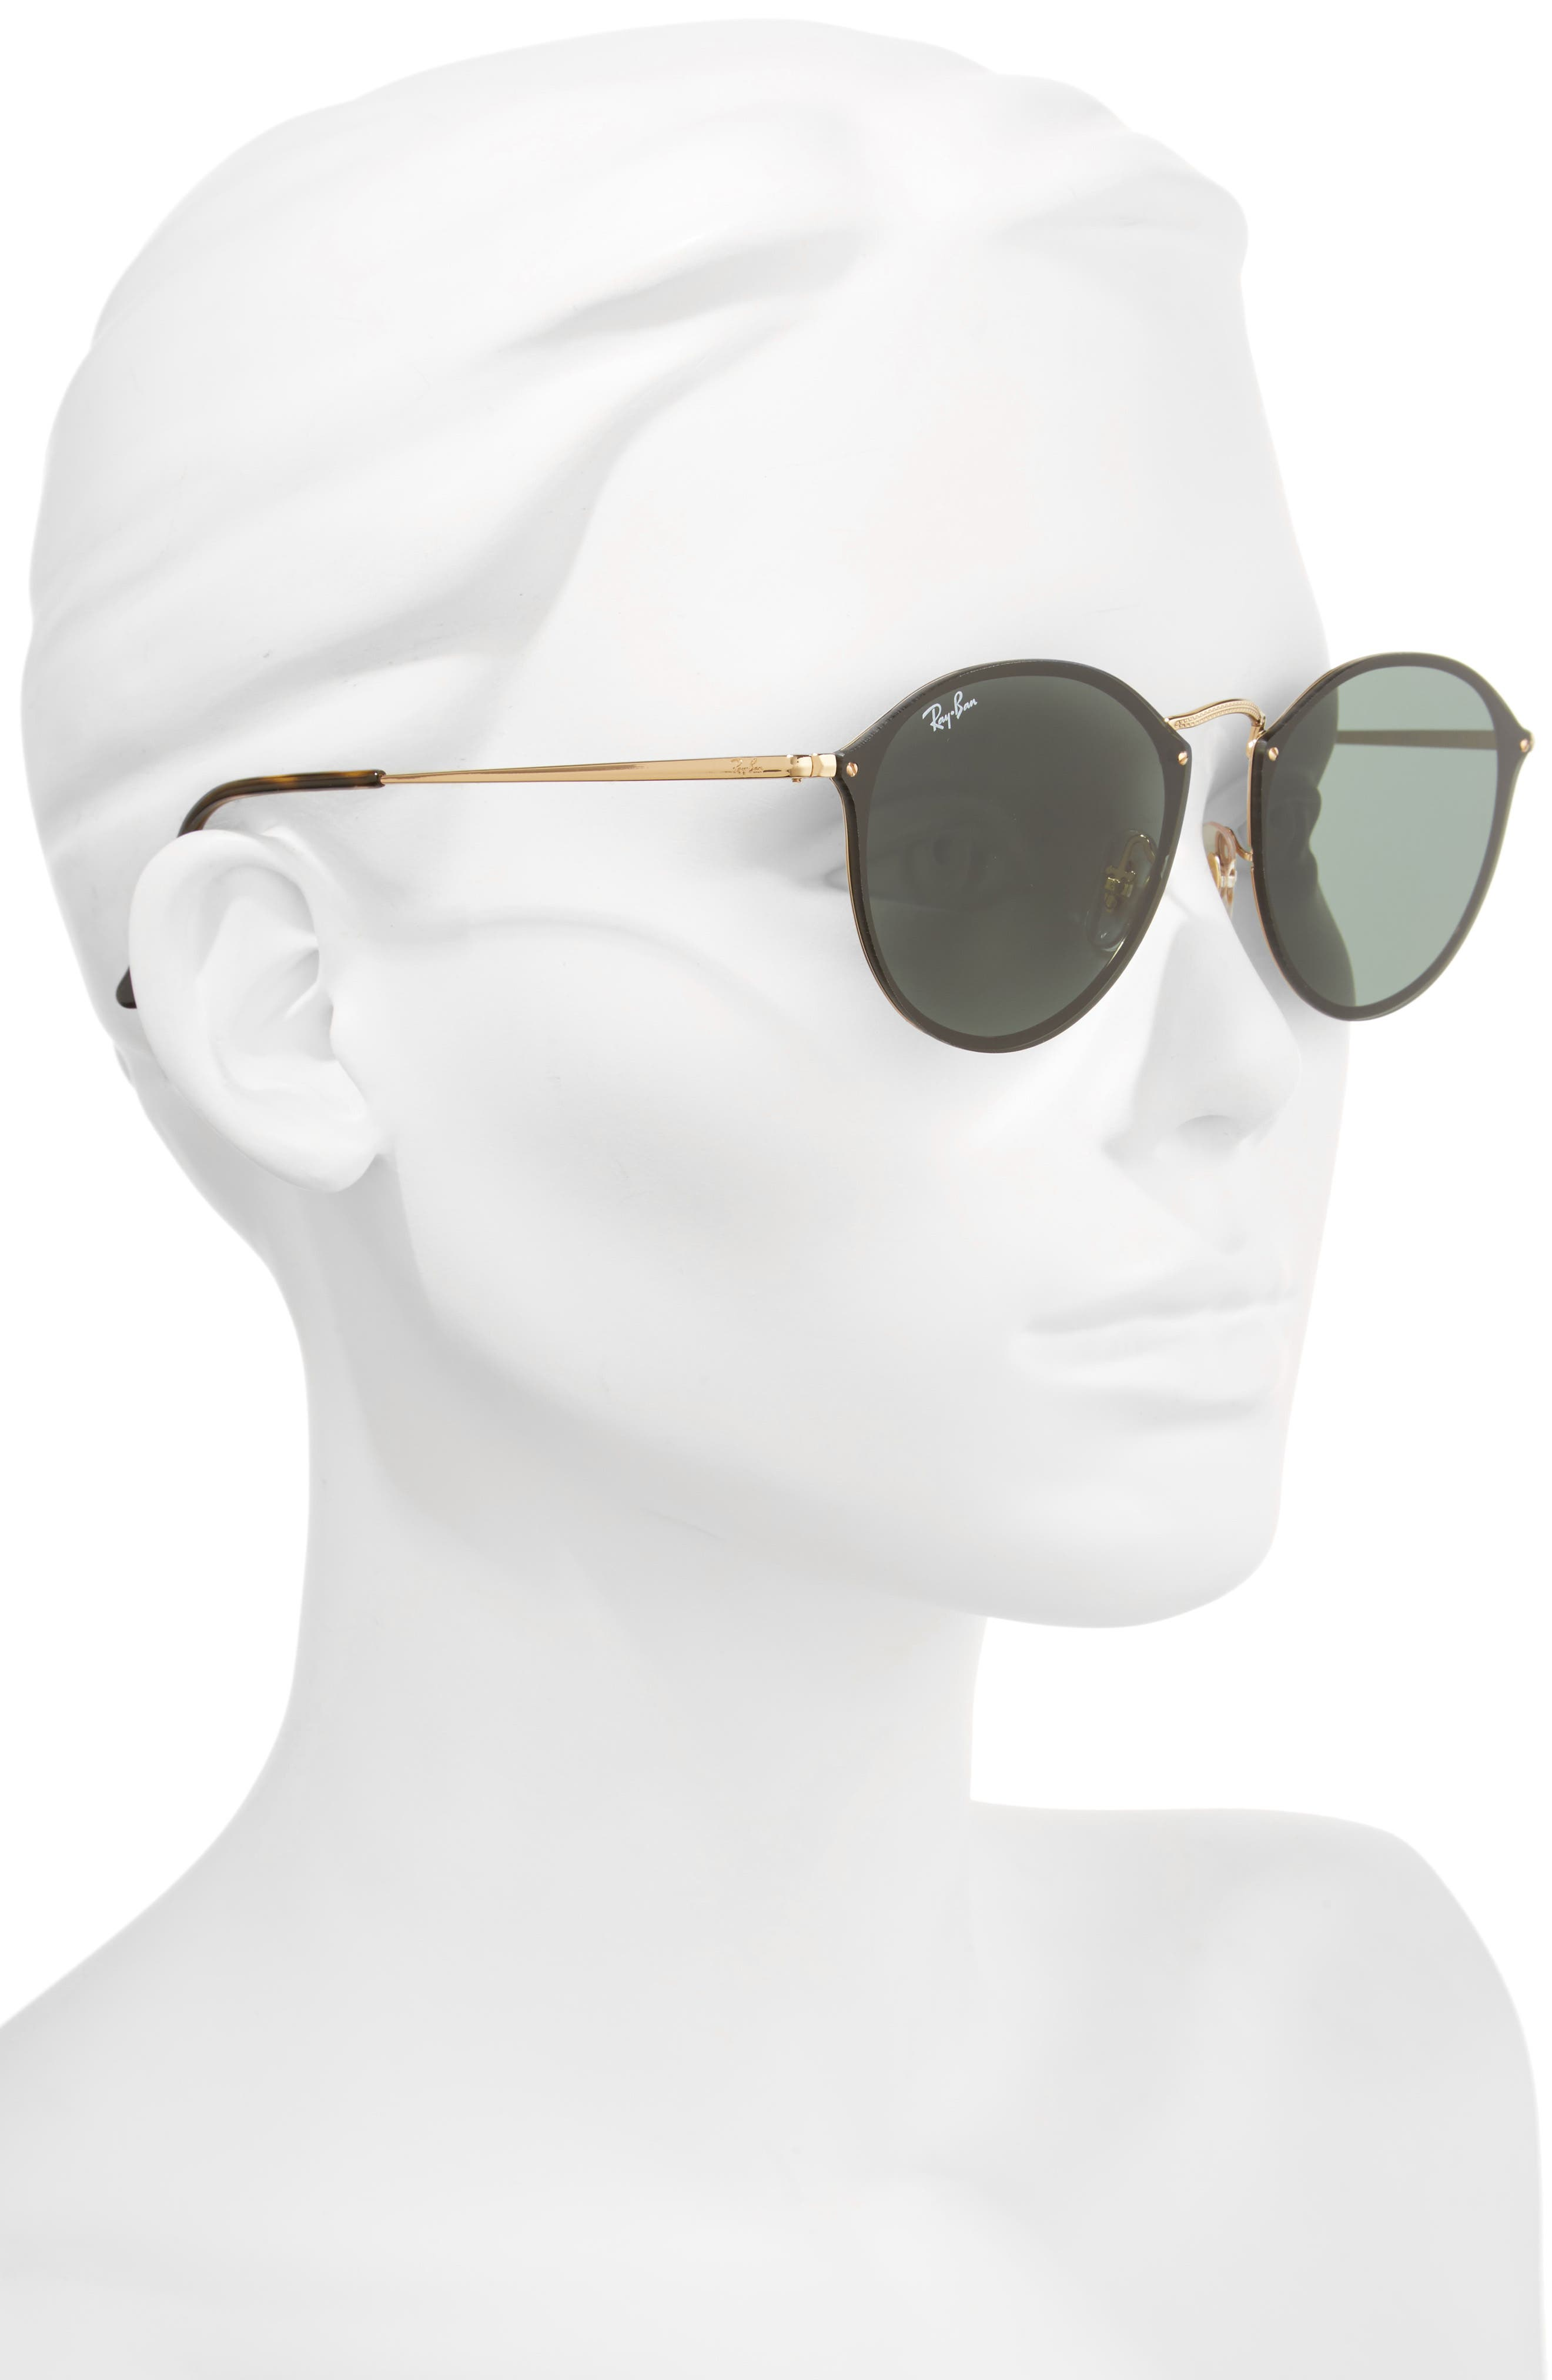 RAY-BAN, Blaze 59mm Round Sunglasses, Alternate thumbnail 2, color, GOLD/ GREEN